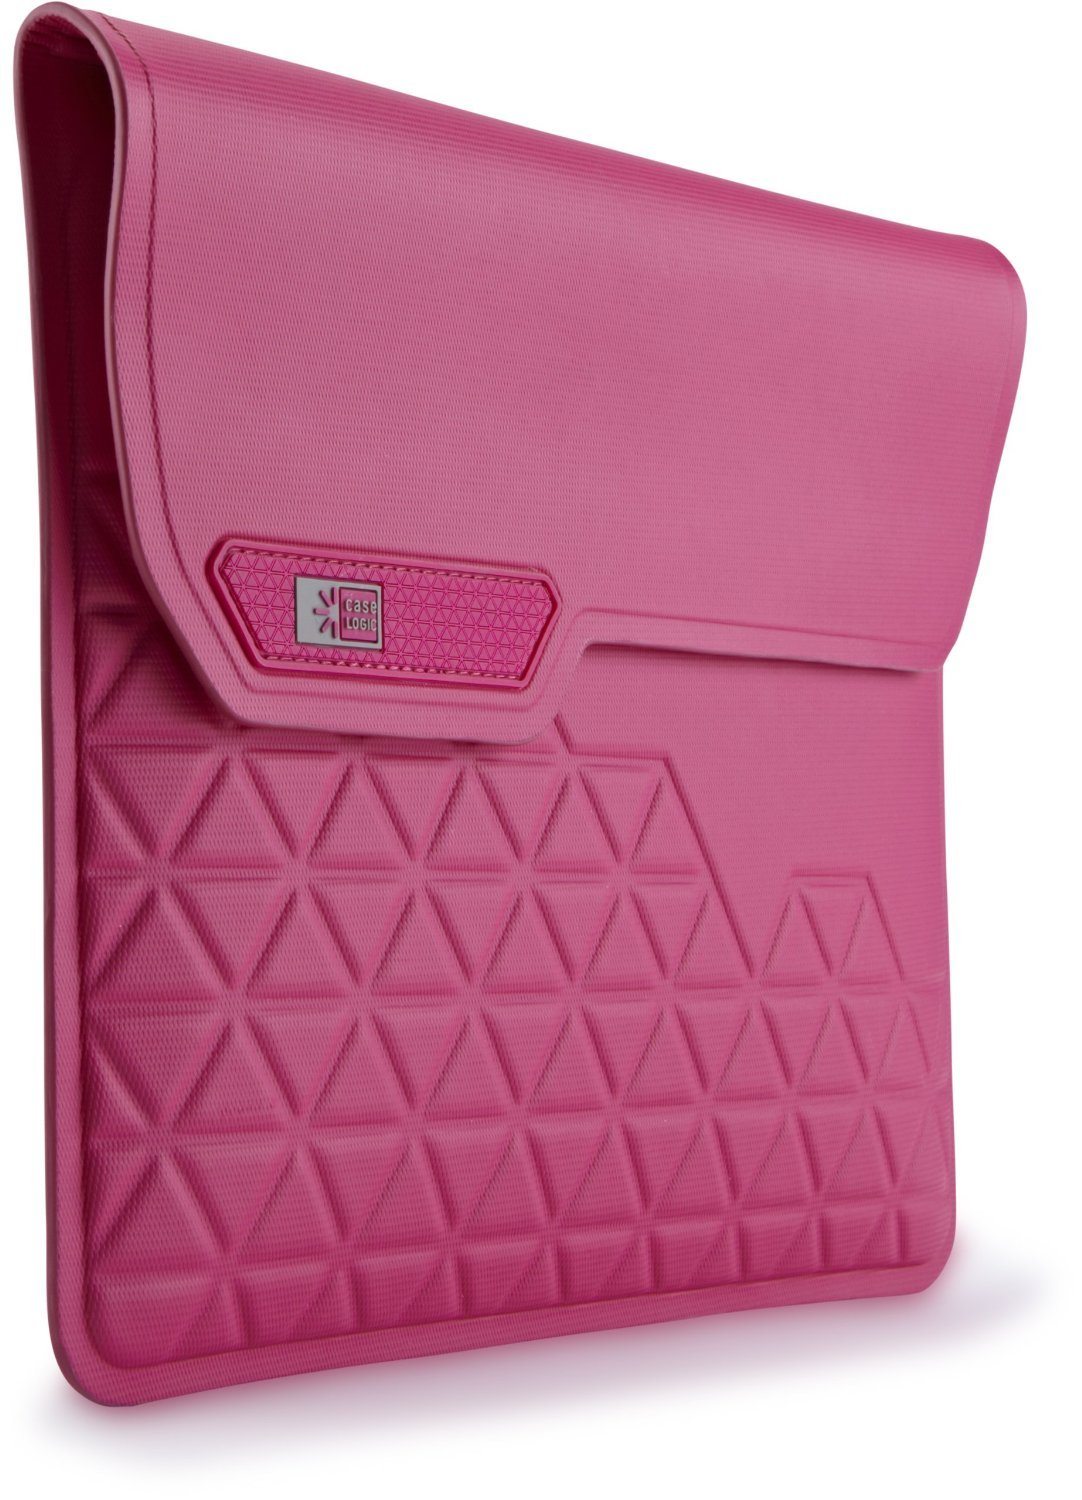 Сумка для планшета Case Logic iPad 3 Welded Sleeve Pink (SSAI-301)